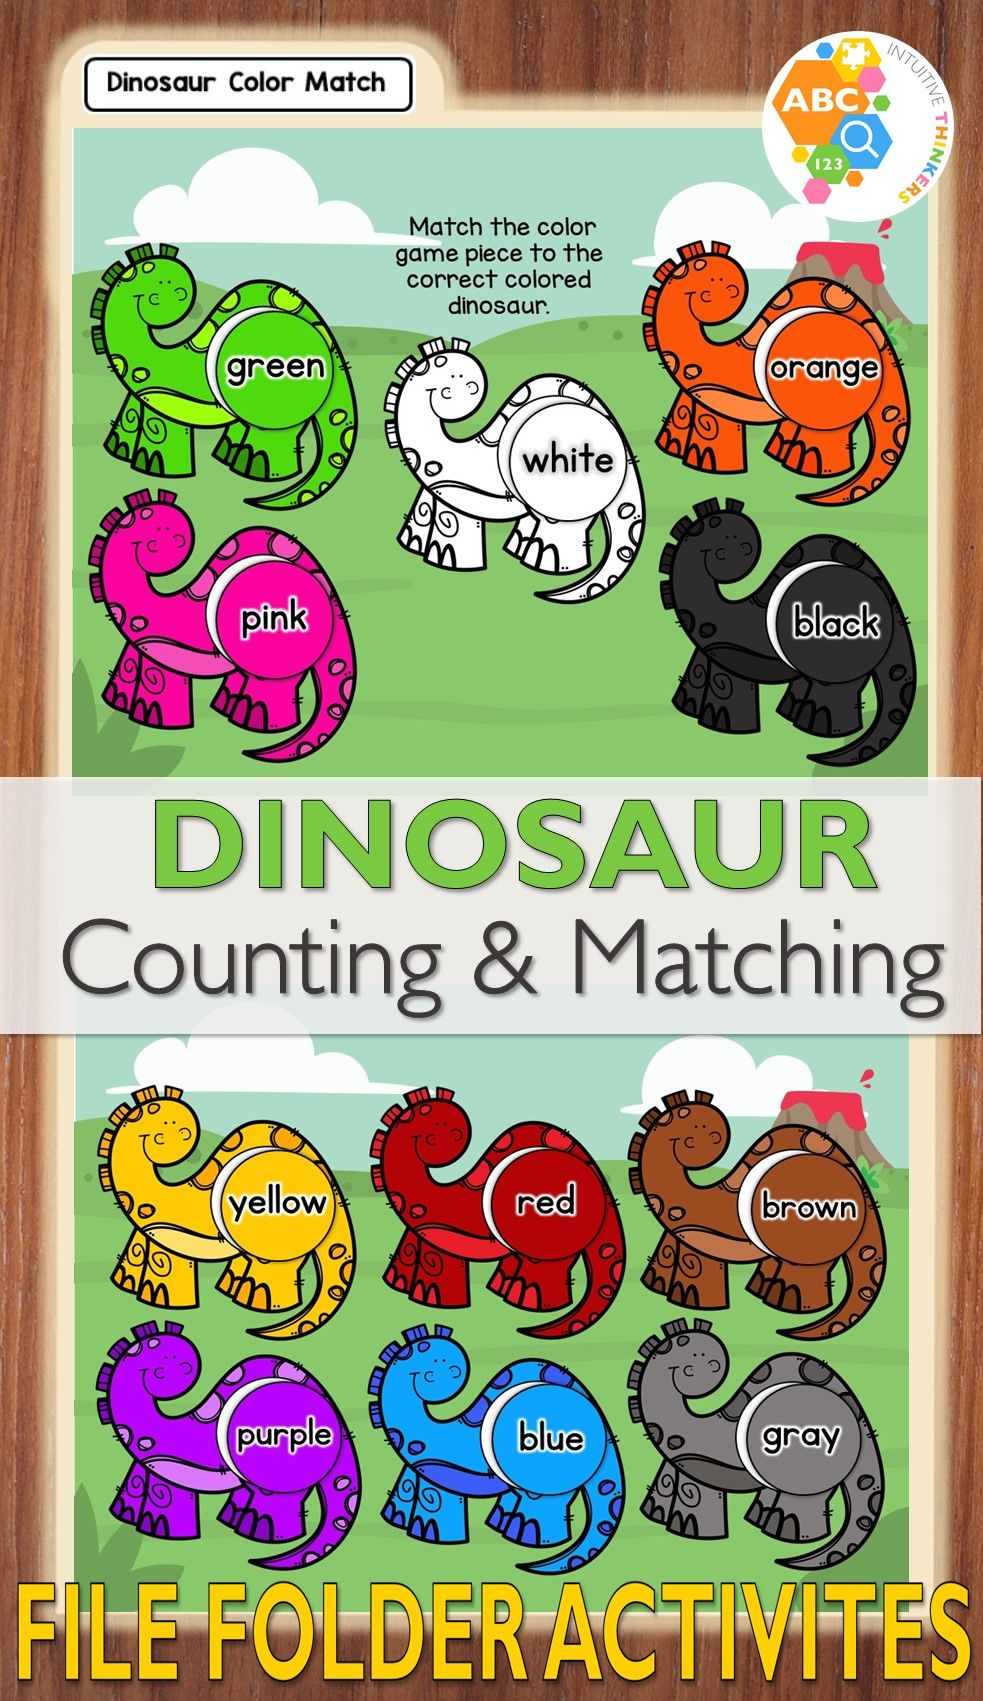 Dinosaur Counting and Matching File Folder Activities   File folder ...